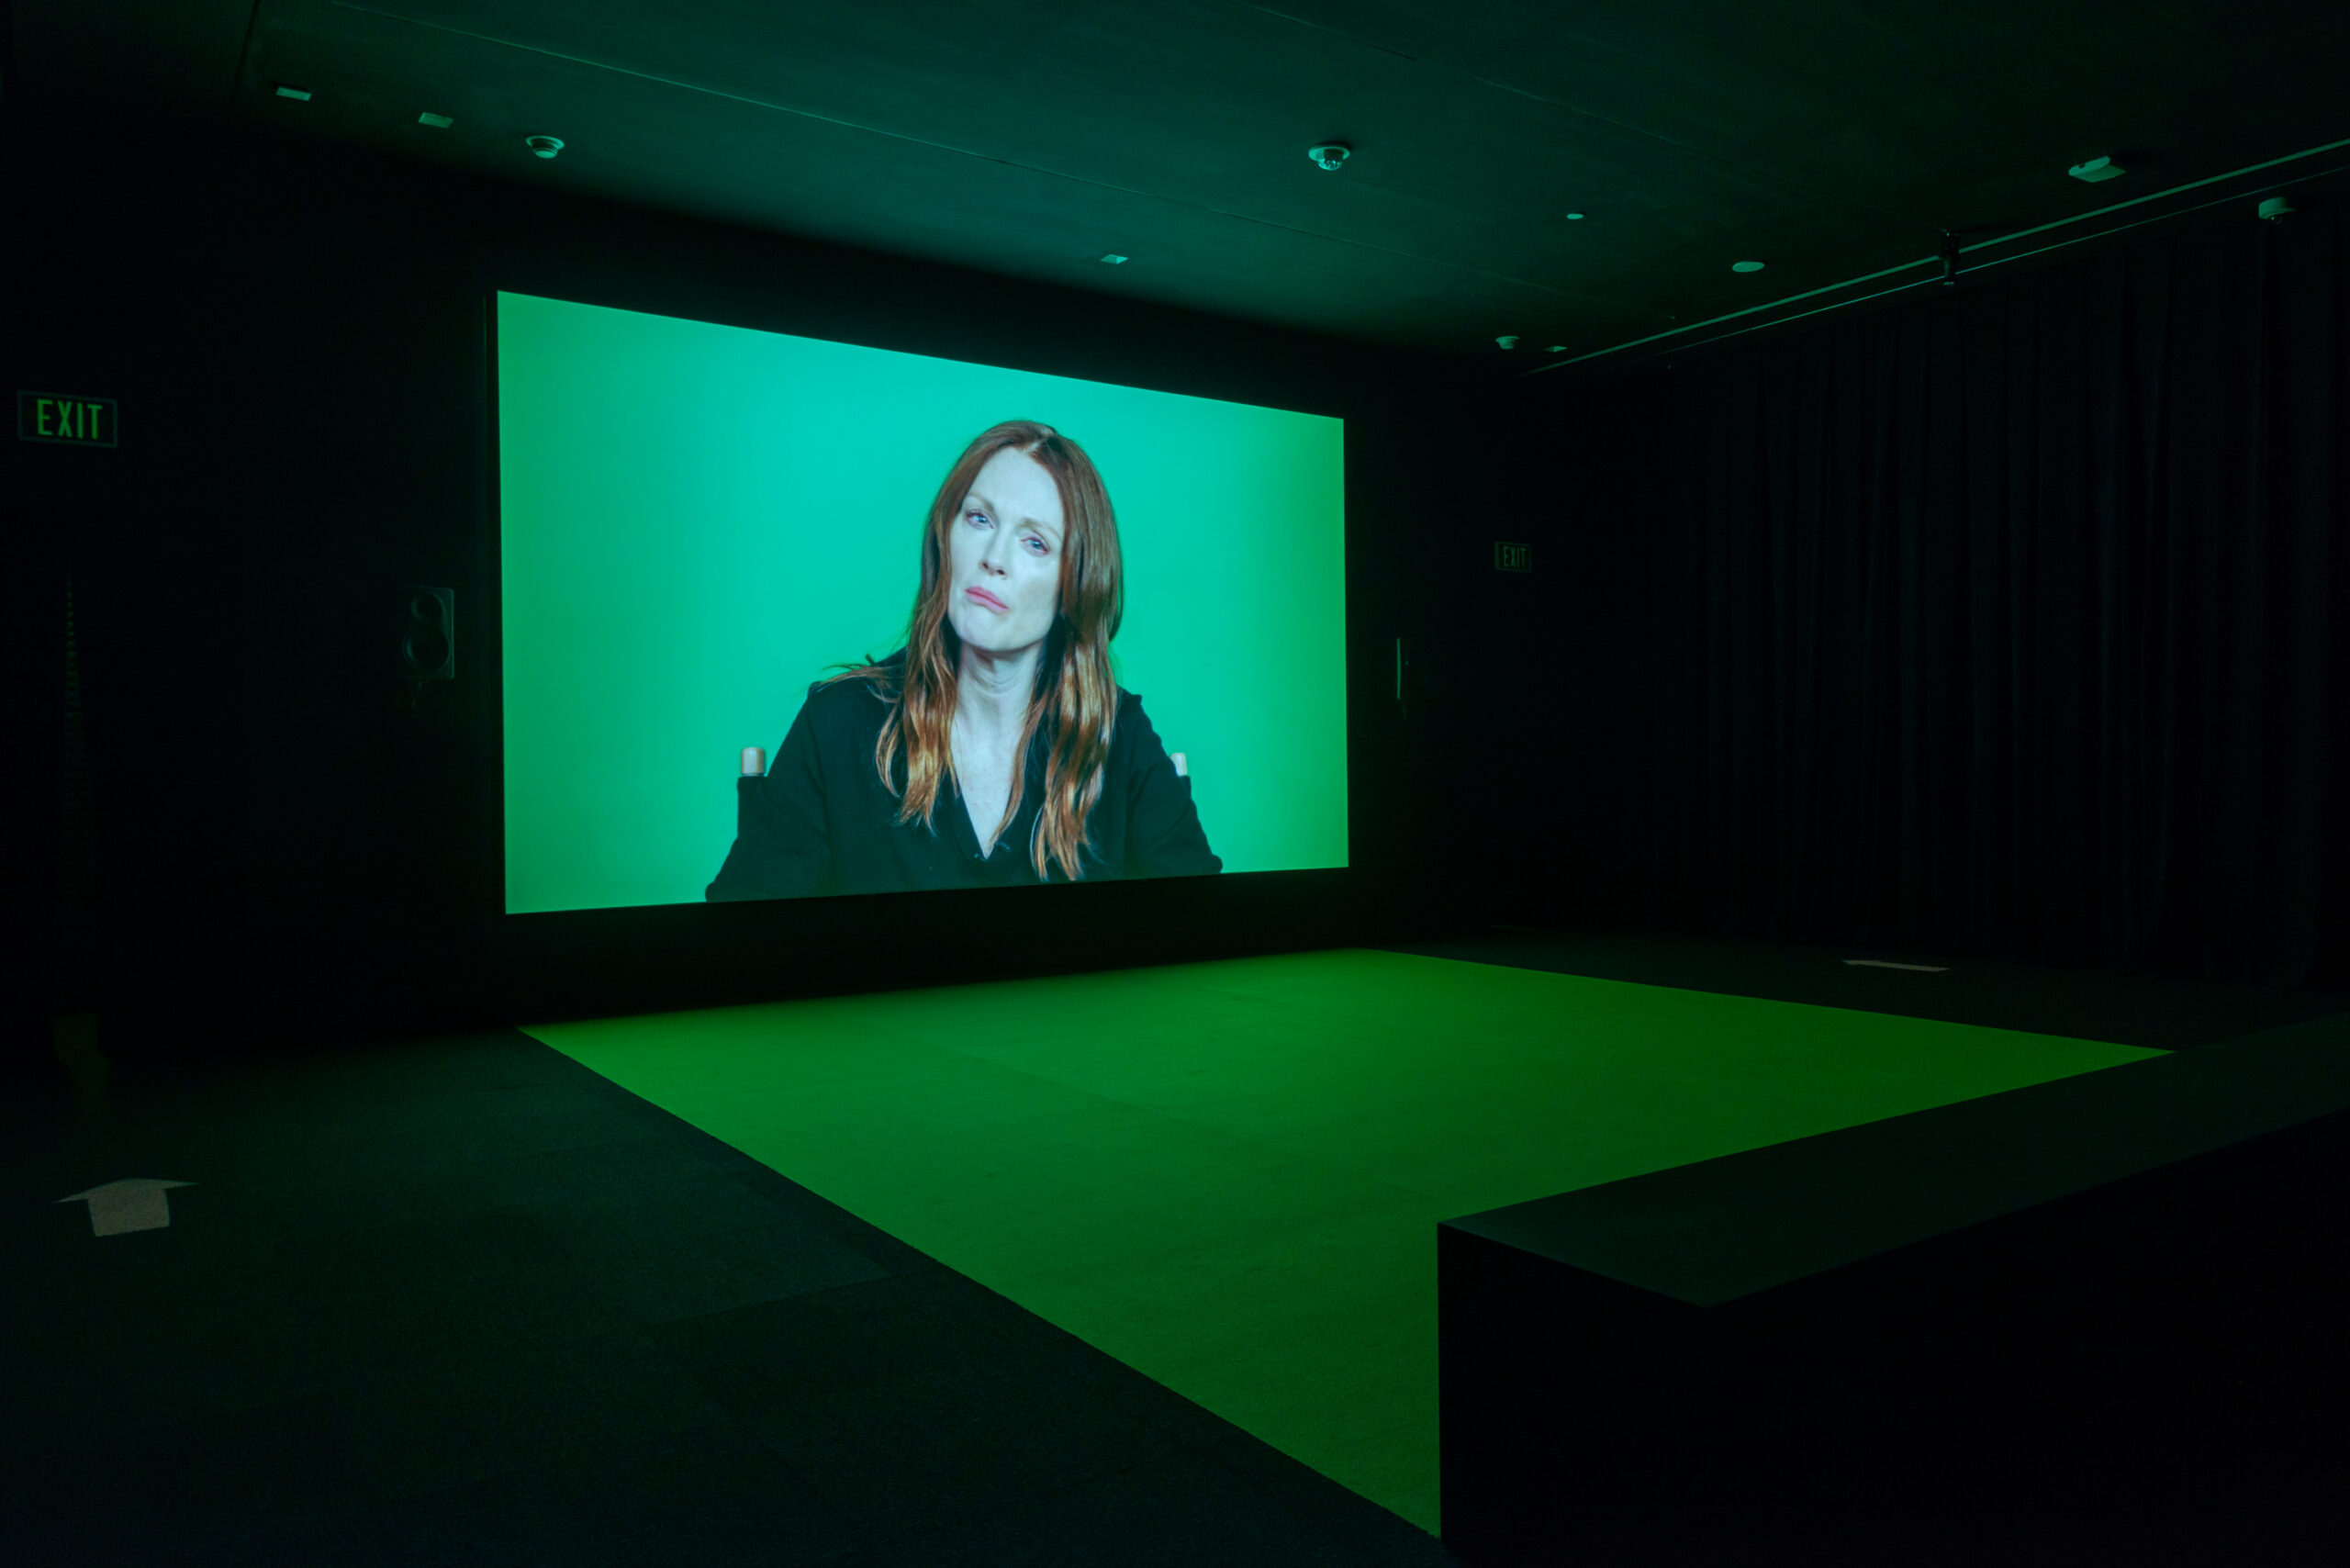 Candice Breitz. Installation view of Love Story (2016) at the BMA. Commissioned by the National Gallery of Victoria, Outset Germany + Medienboard Berlin-Brandenburg. Courtesy of Kaufmann Repetto (New York) + Goodman Gallery (Johannesburg/London)